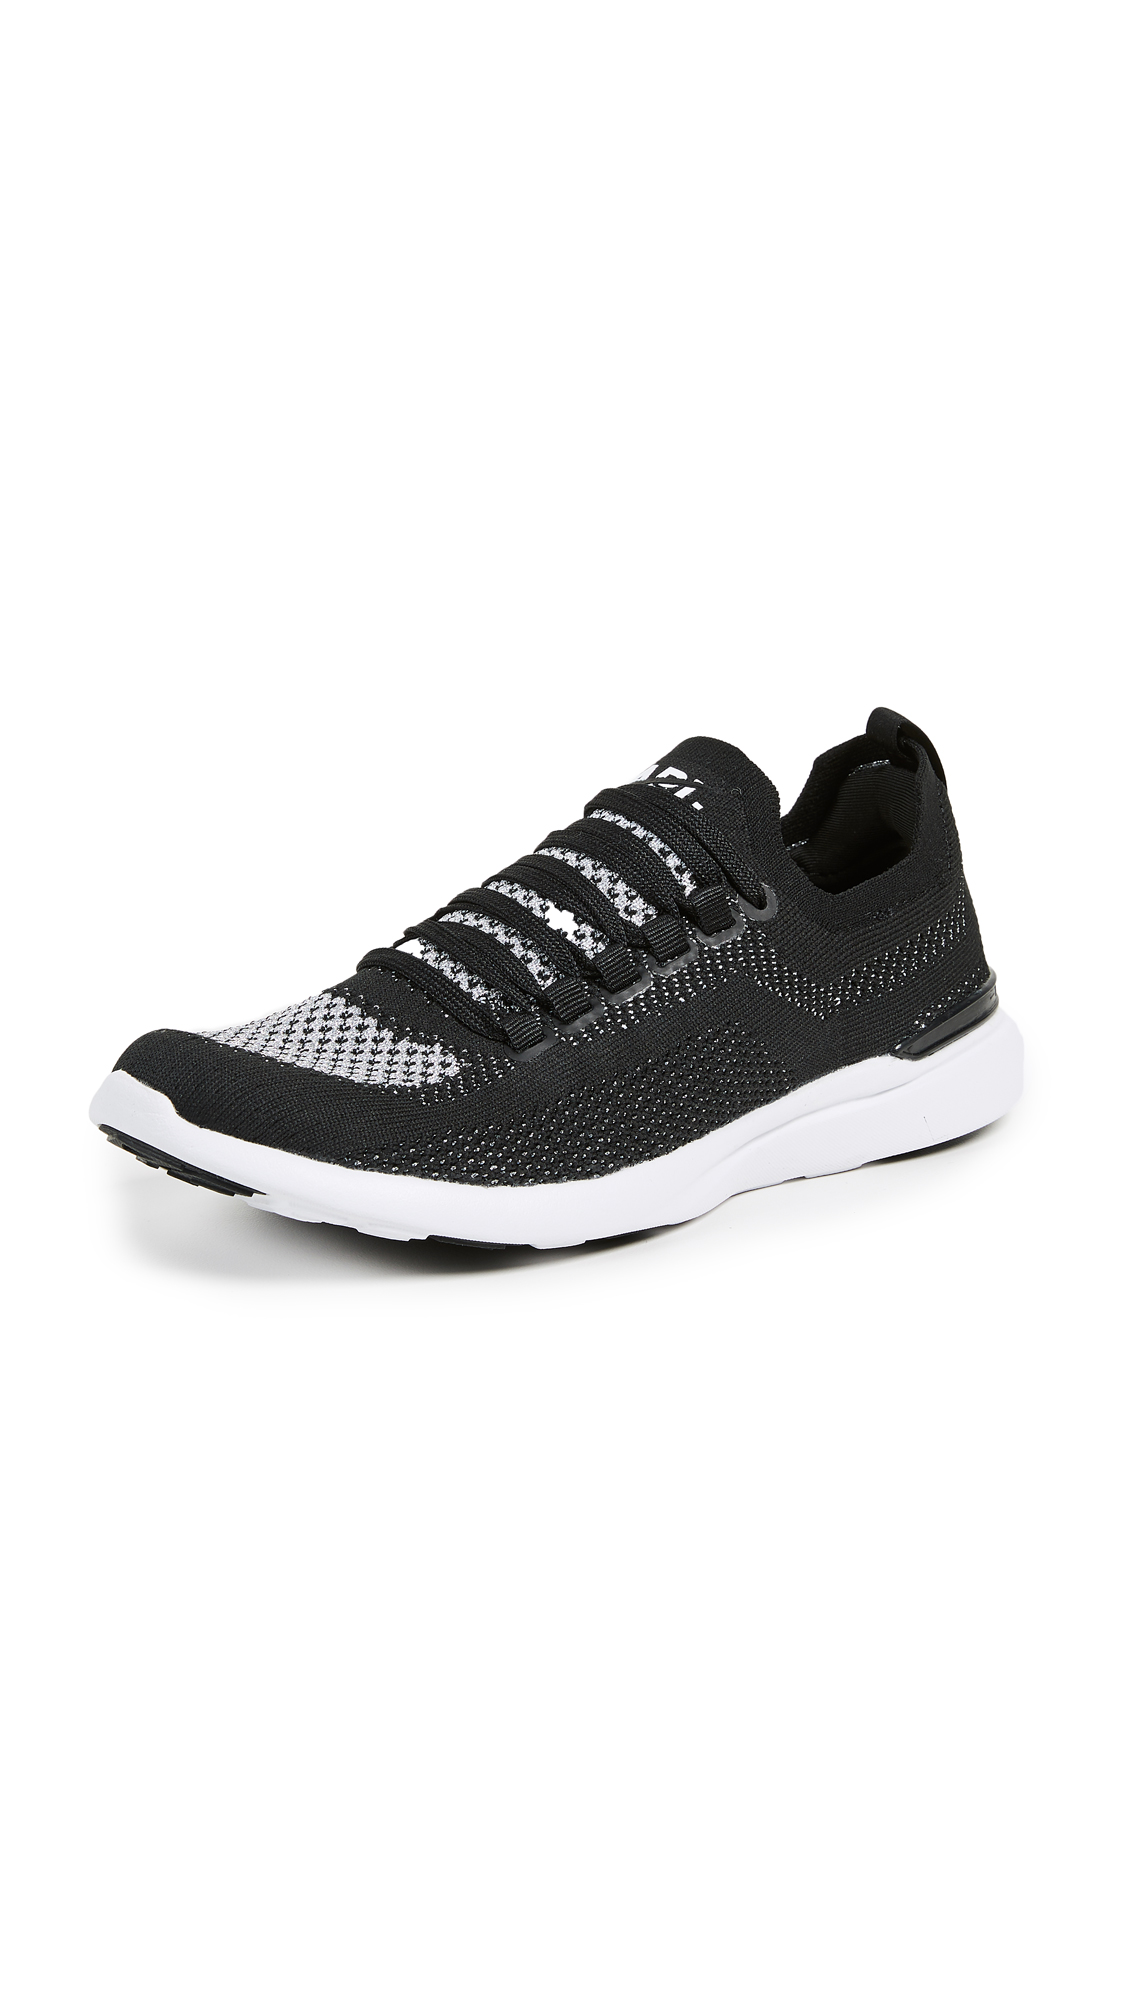 APL: Athletic Propulsion Labs TechLoom Breeze Sneakers - Black/Metallic Silver/White